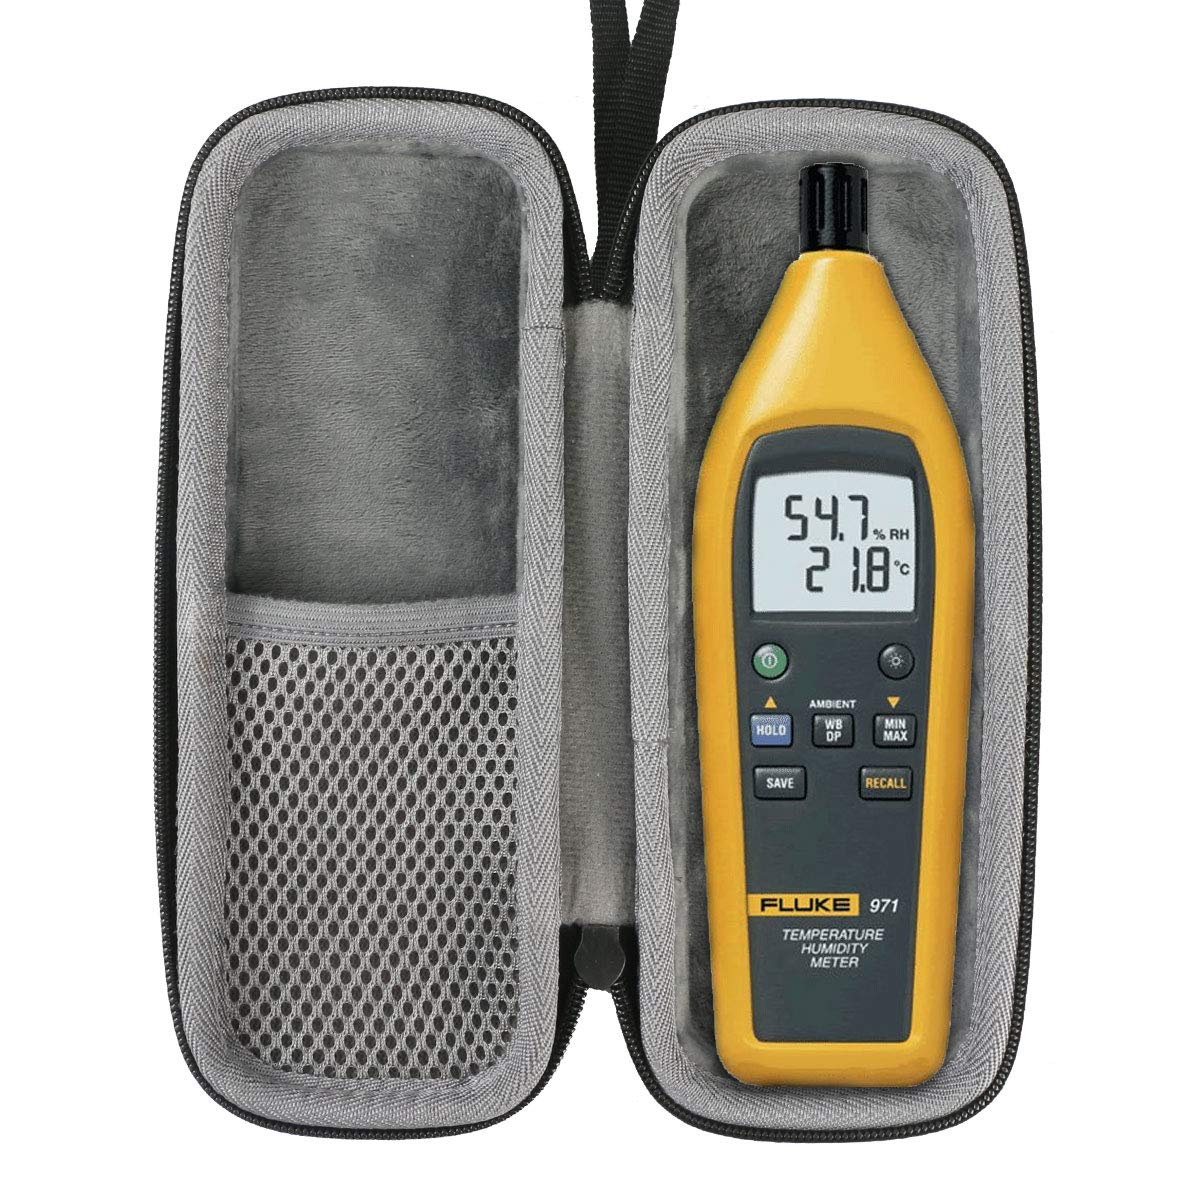 Co2Crea Hard Travel Case for Fluke 971 Temperature Humidity Meter by co2crea